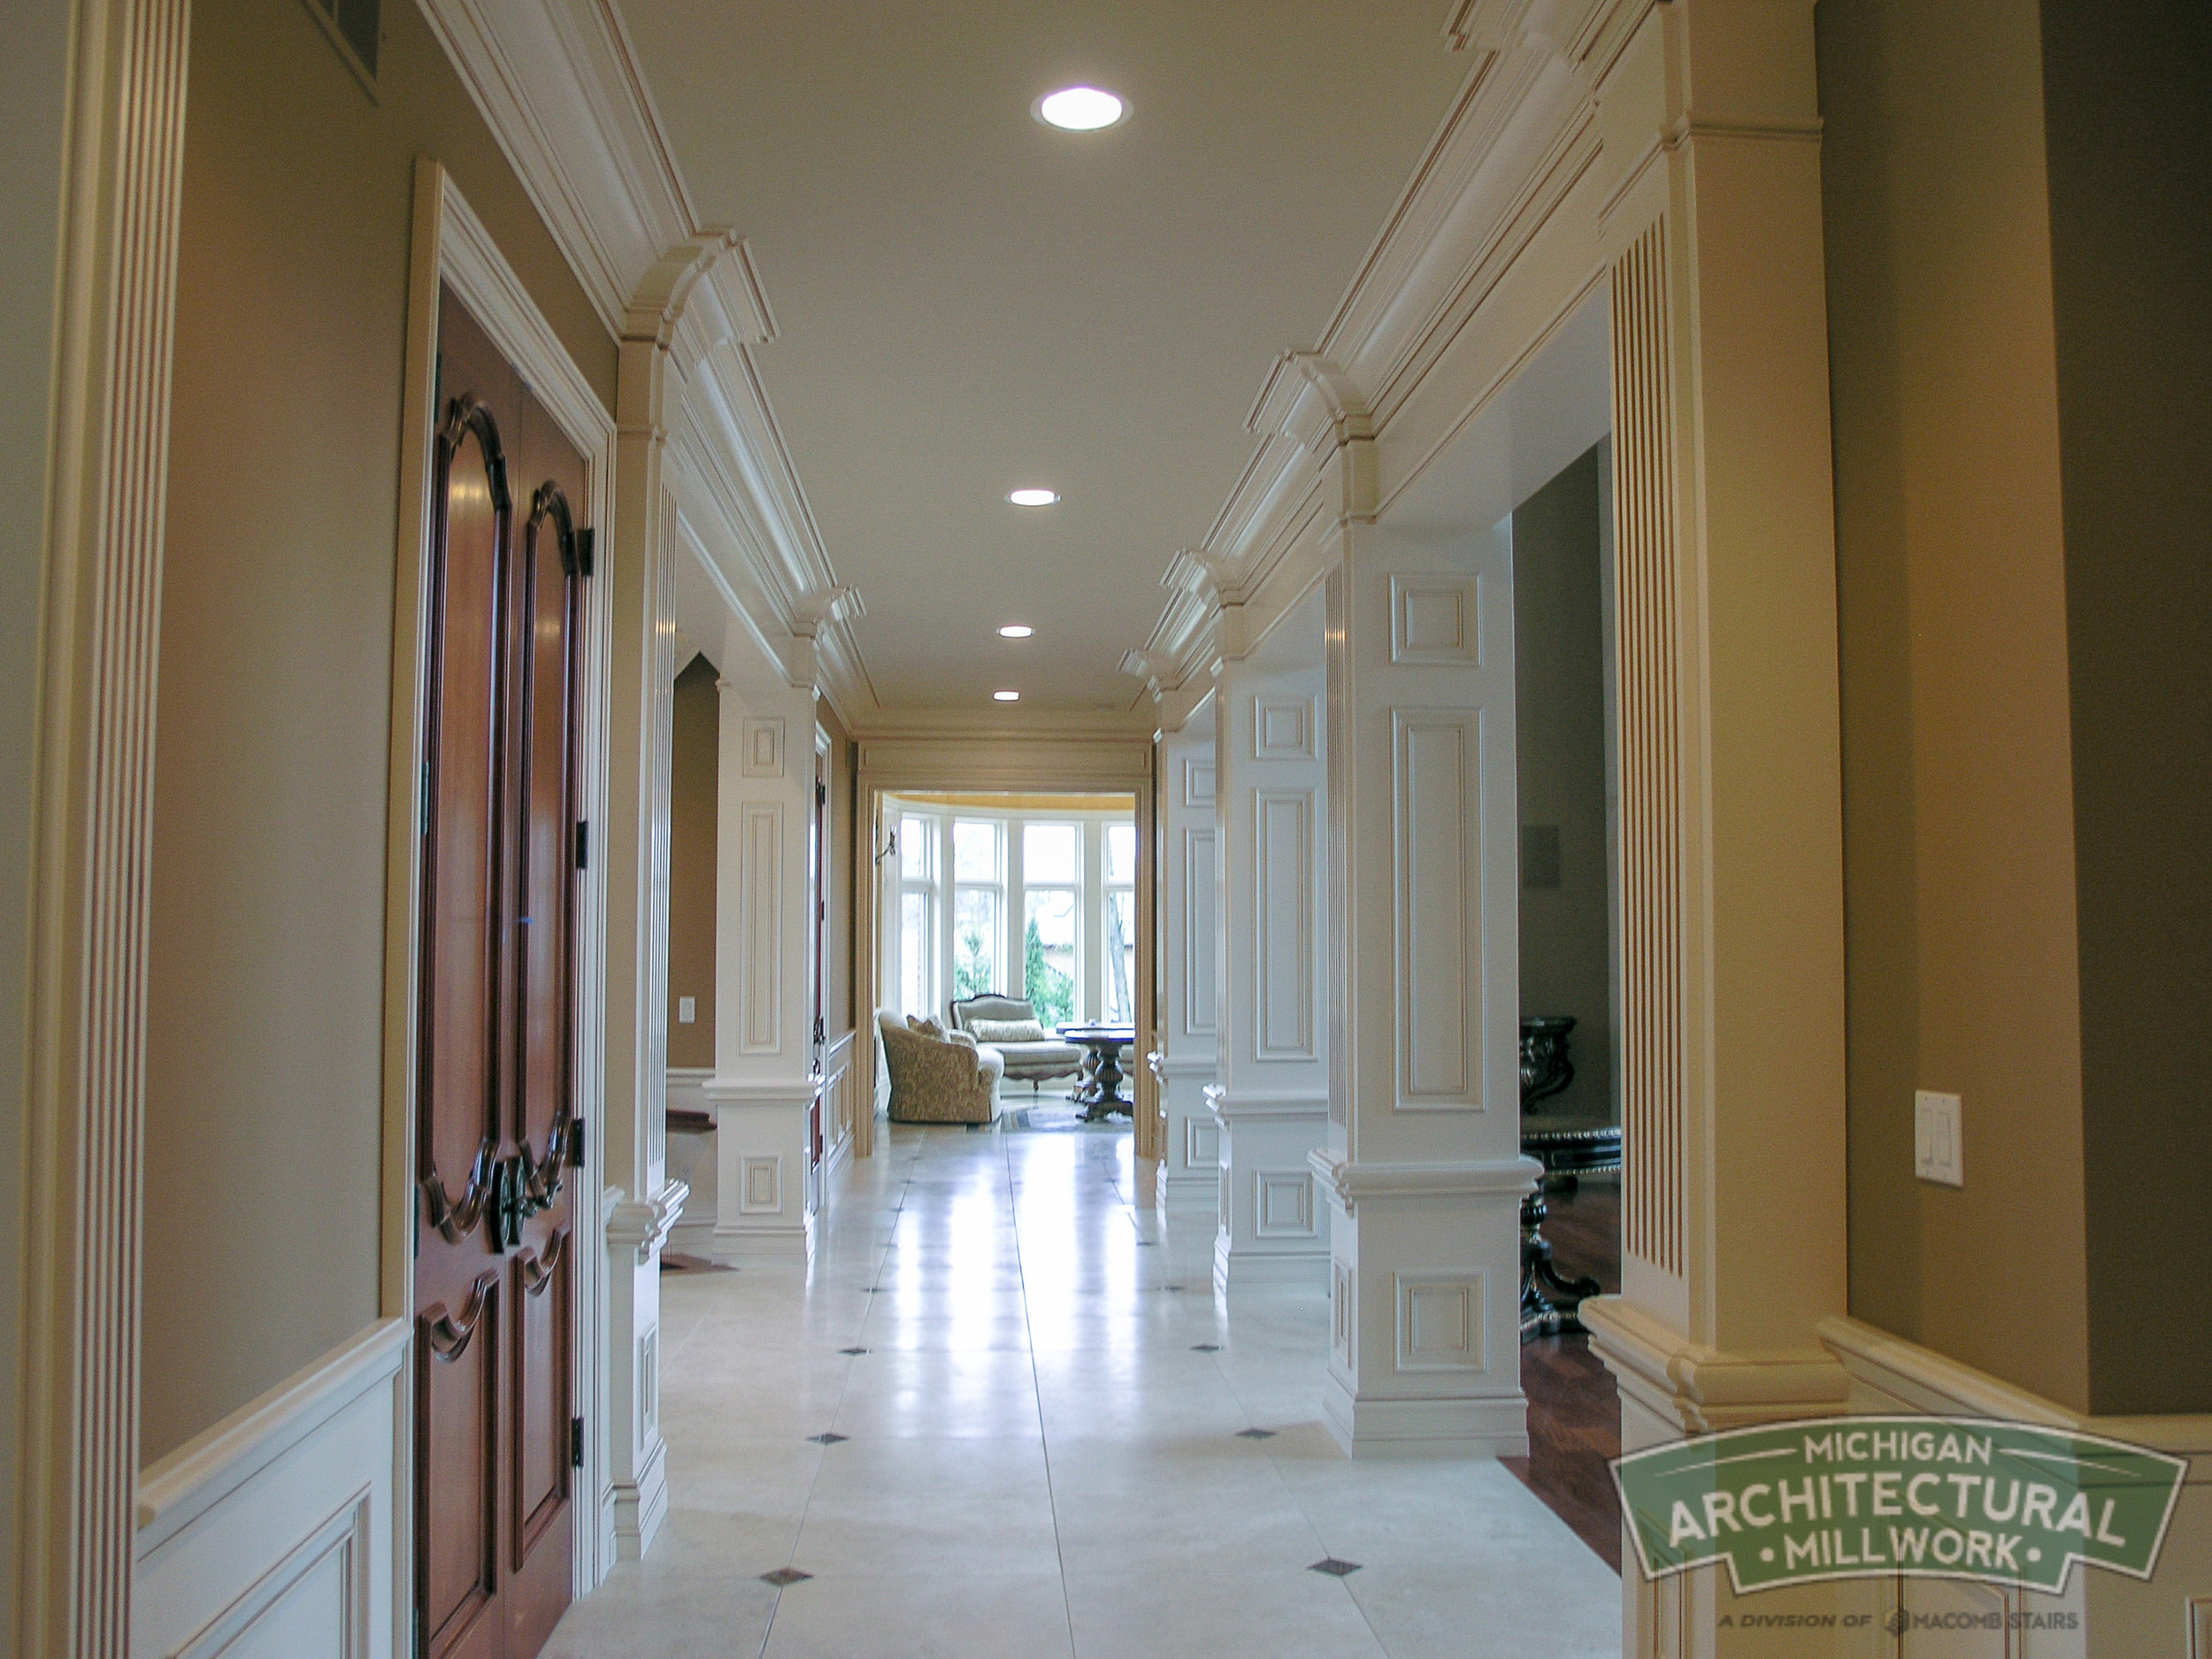 Michigan Architectural Millwork- Moulding and Millwork Photo-207.jpg